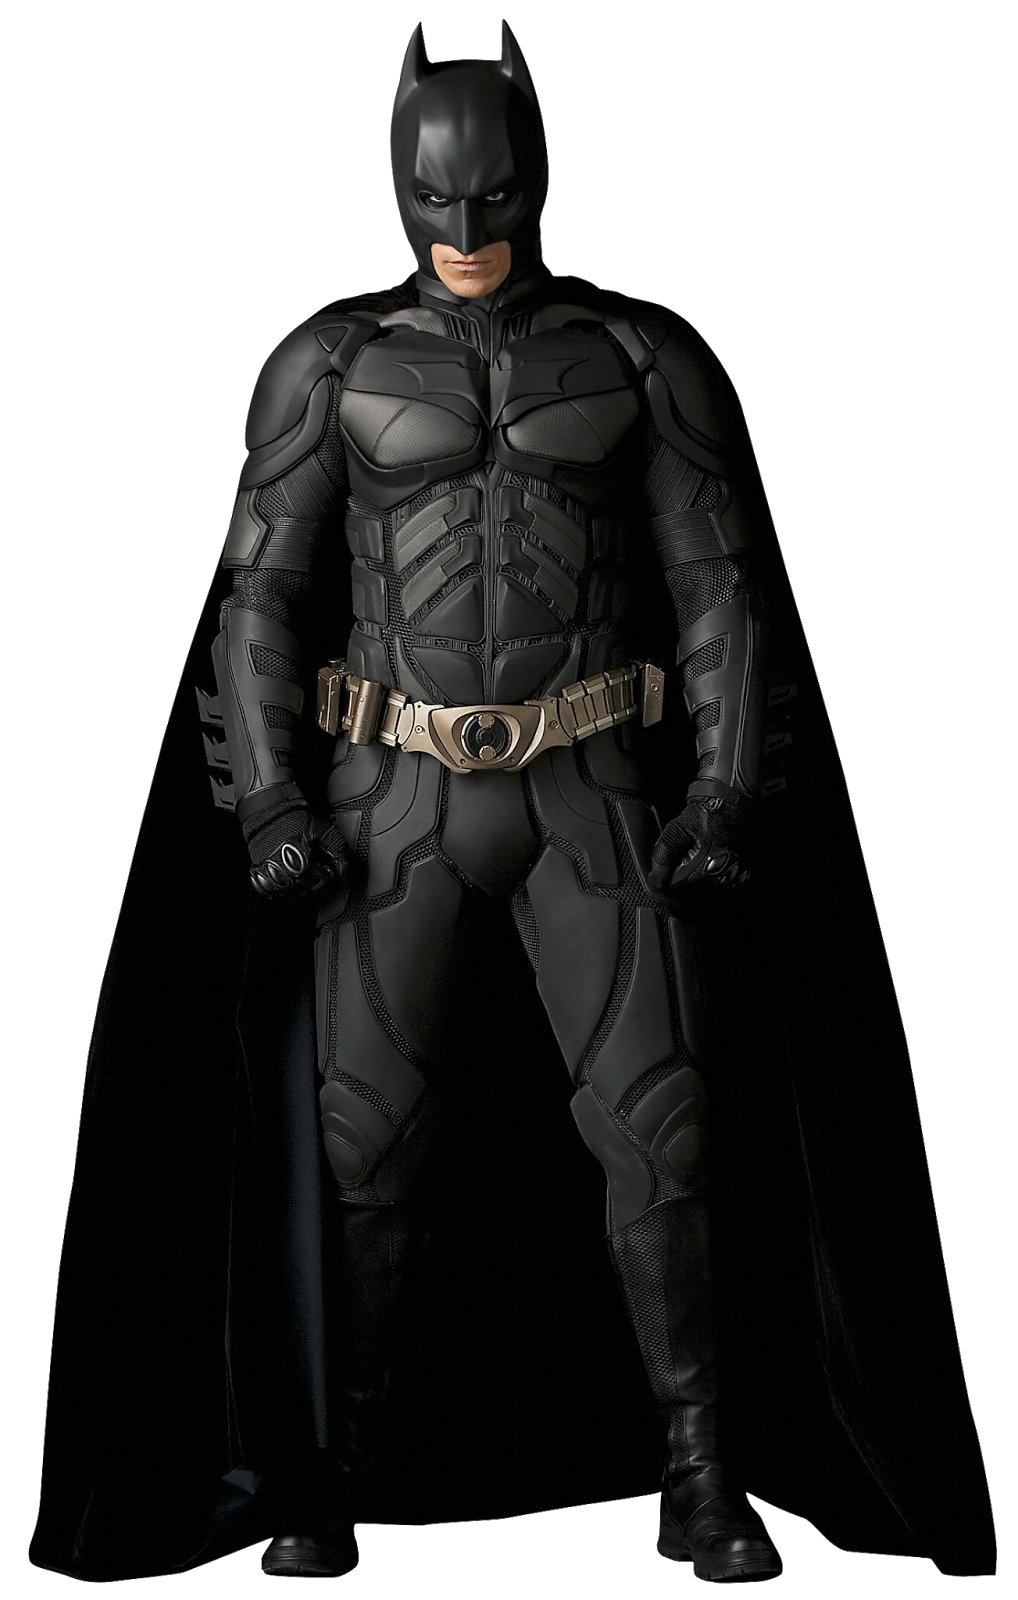 Batman (The Dark Knight Trilogy) | VS Battles Wiki ...